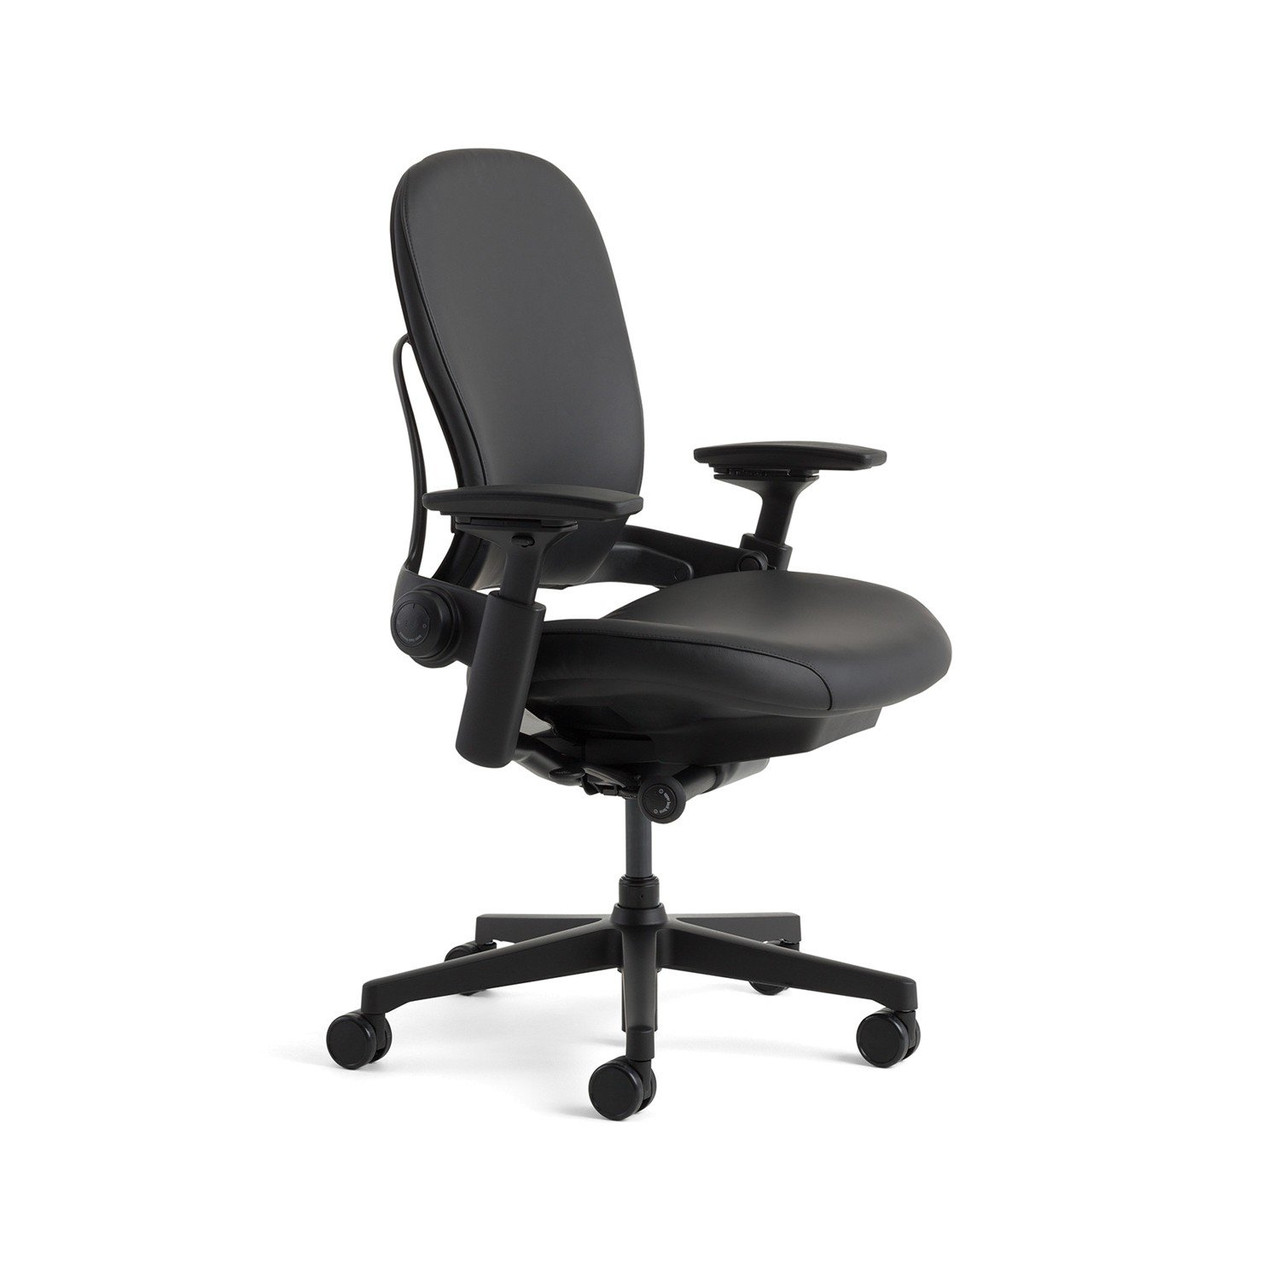 Leap Plus Chair by Steelcase